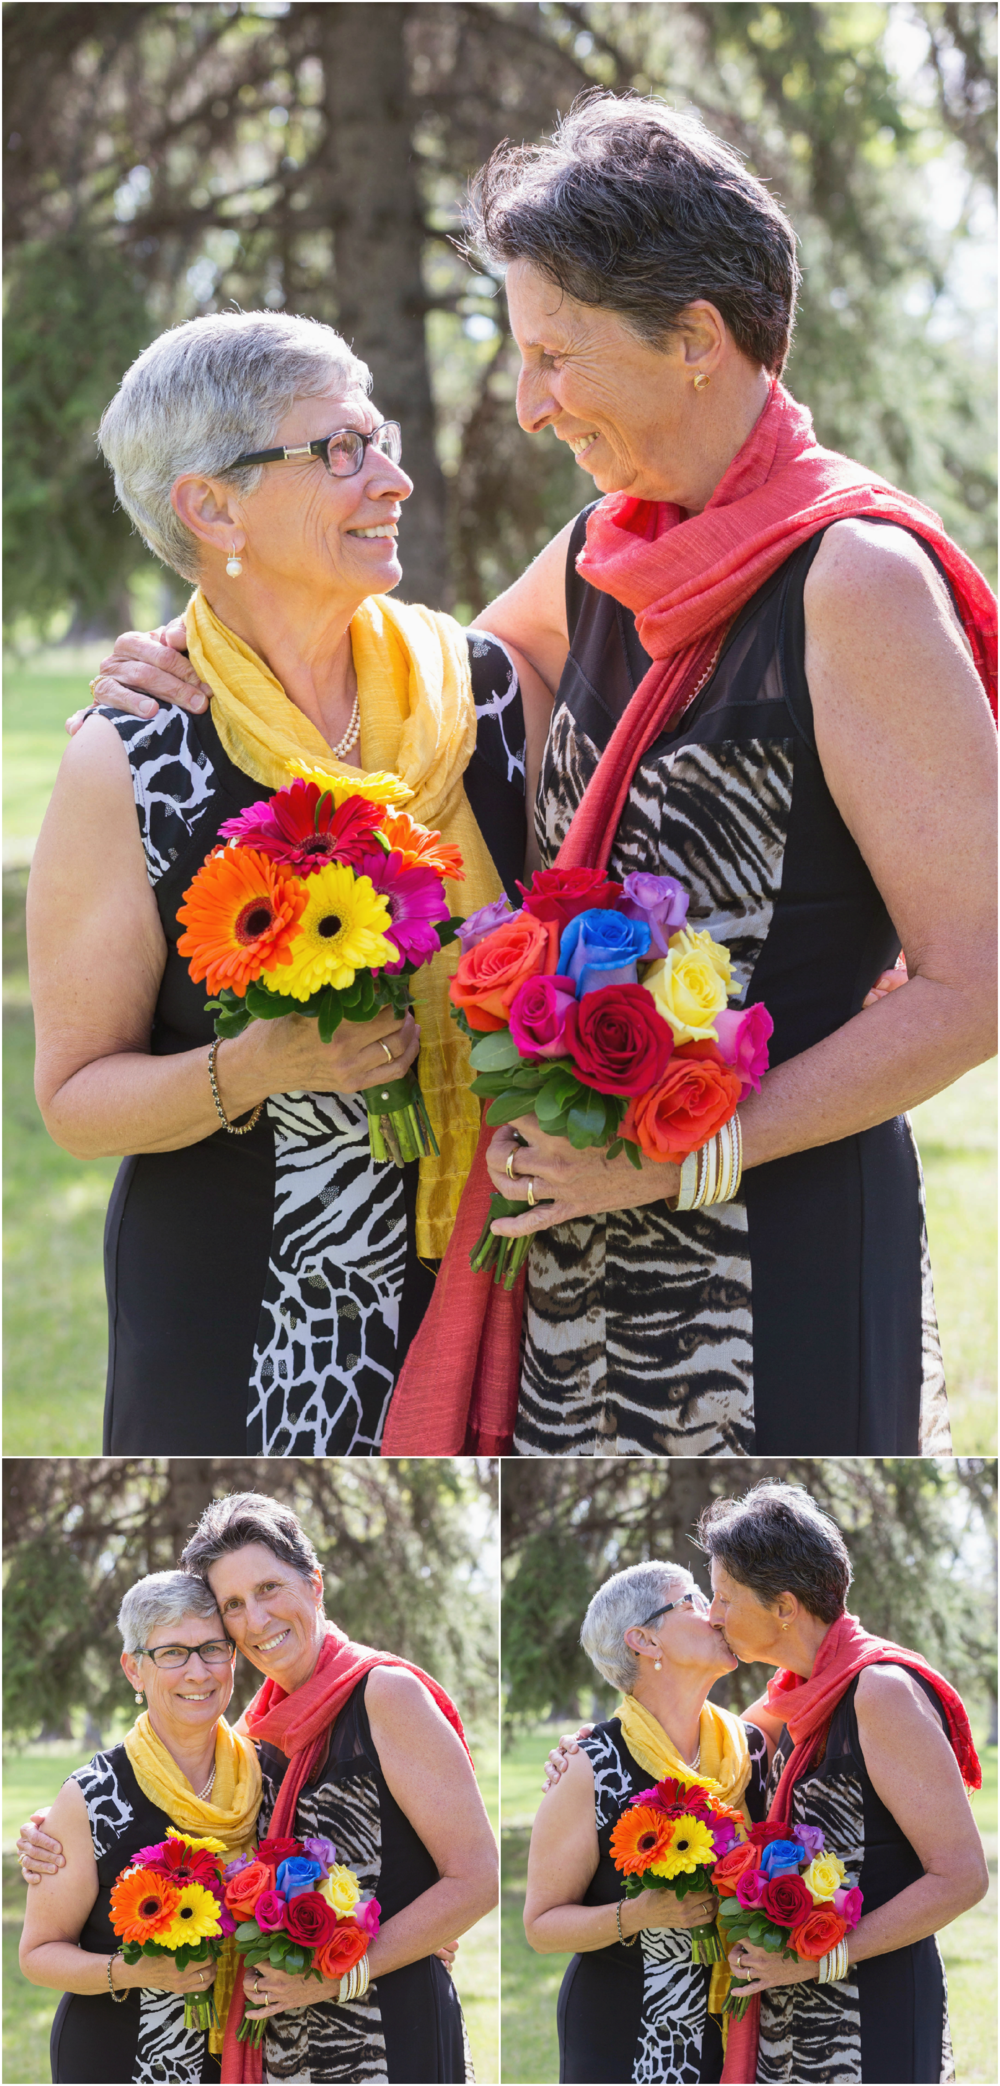 medicine_hat_backyard_wedding_6.png